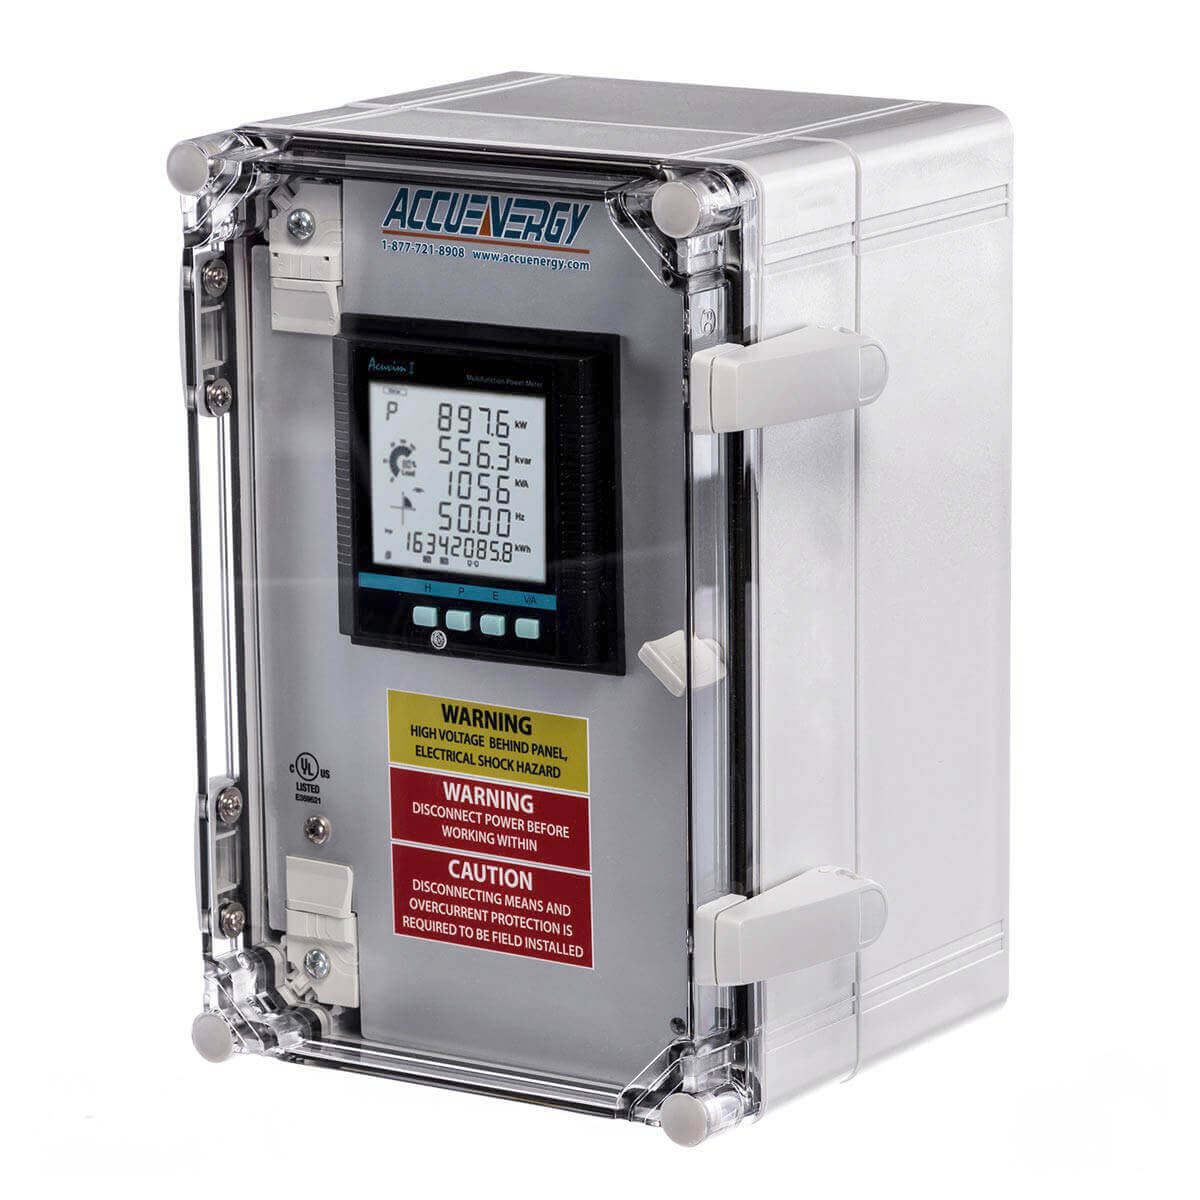 Pre-Wired Power and Energy Meter Panels | Accuenergy